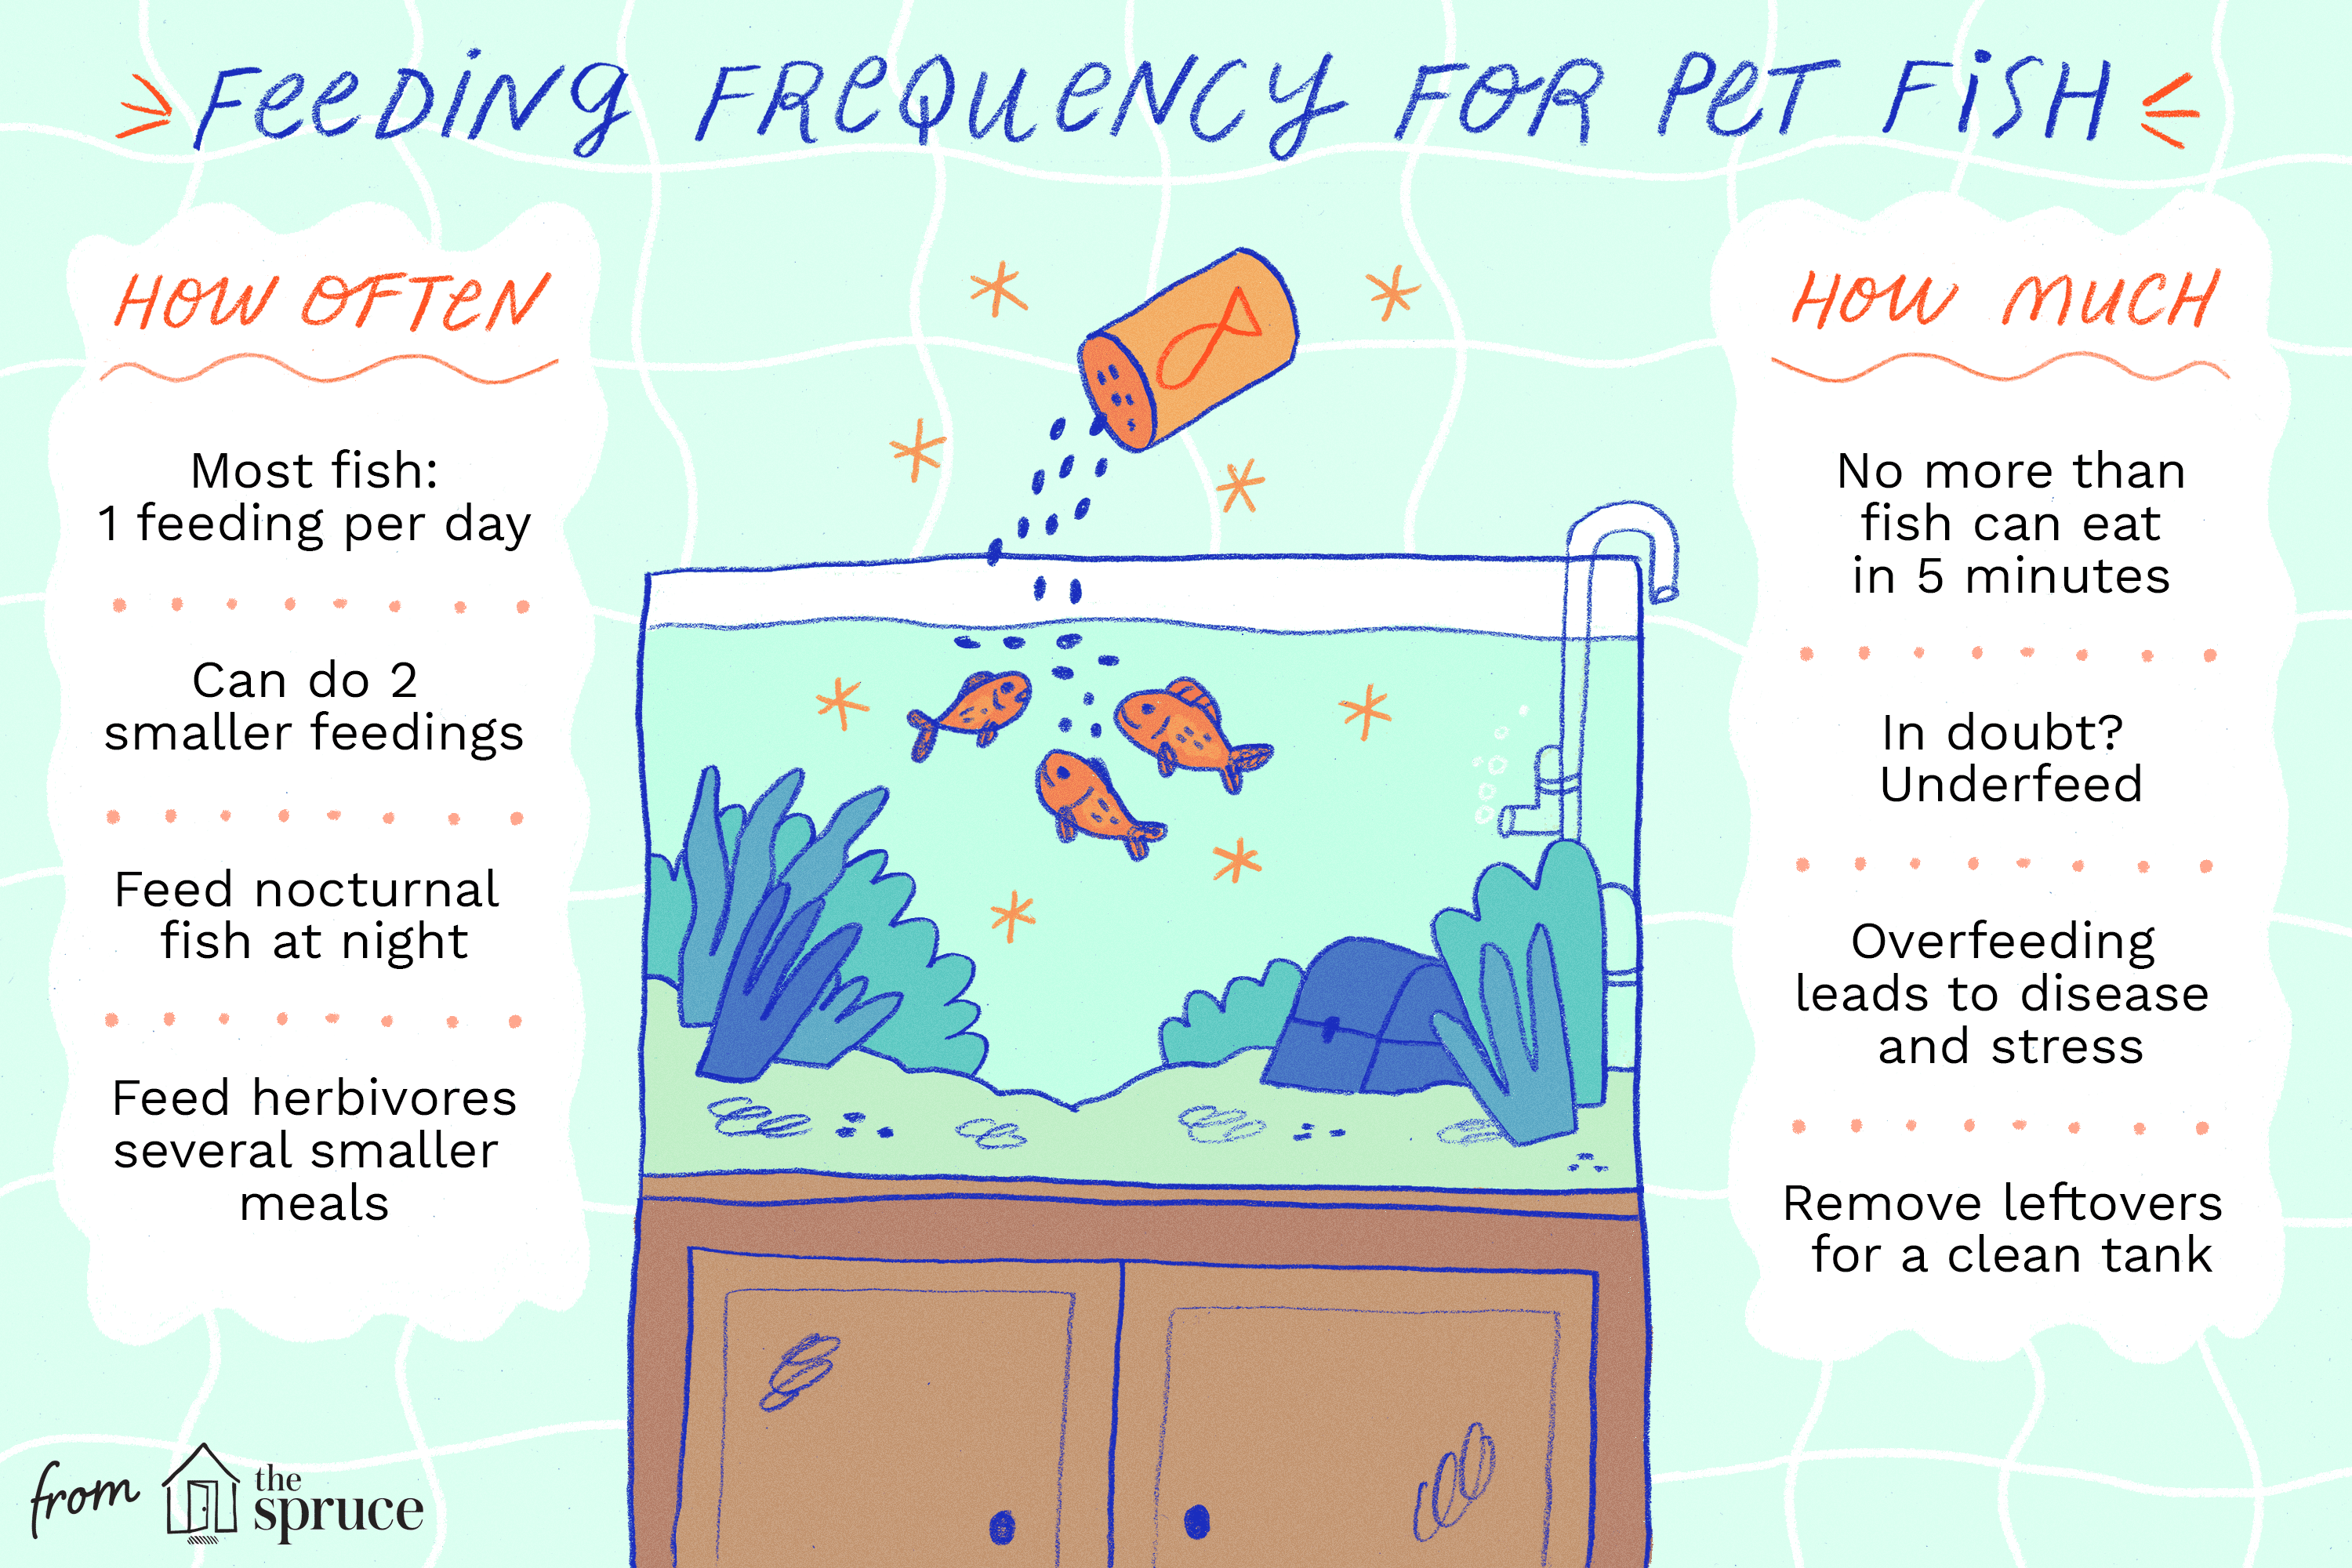 illustration of how often and how much to feed fish